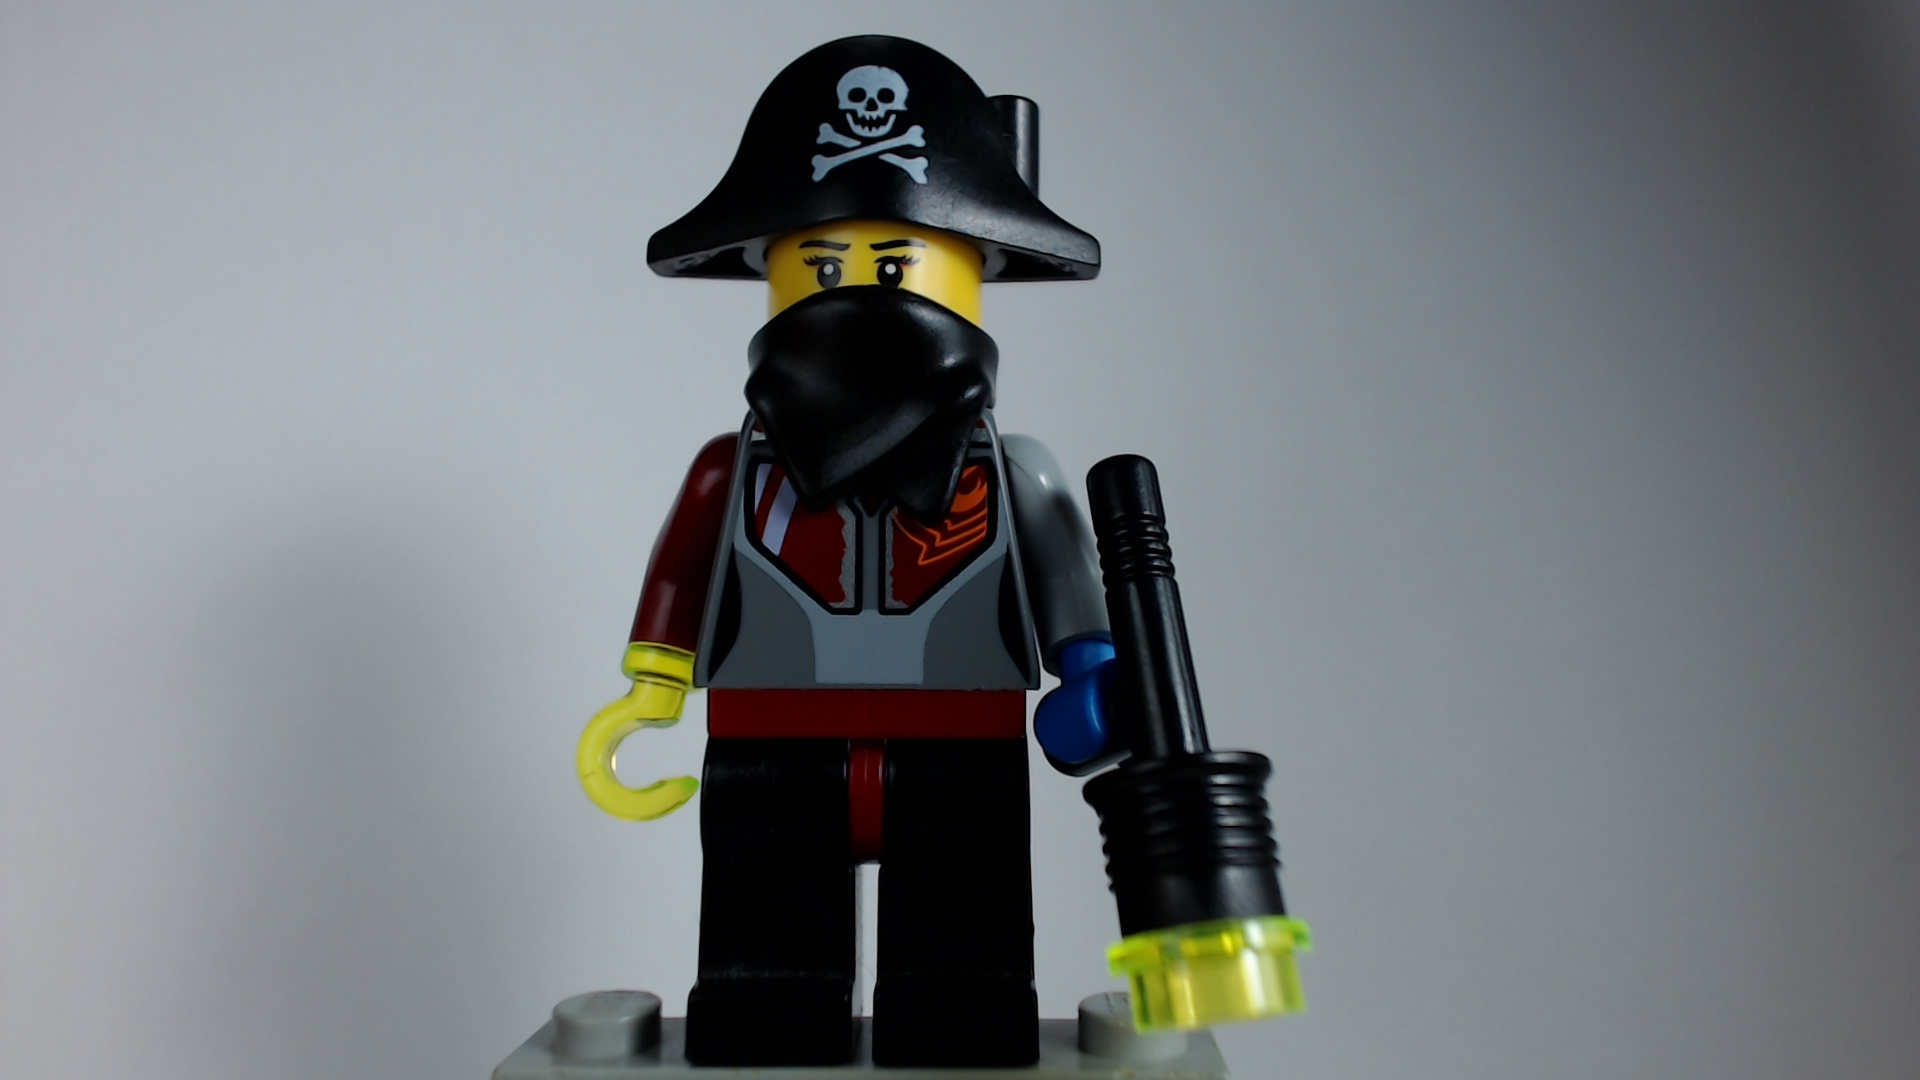 http://bricksafe.com/files/Brickcrazy/Minifigs/2015_11_09_Animation_001_Frame_000002.jpg